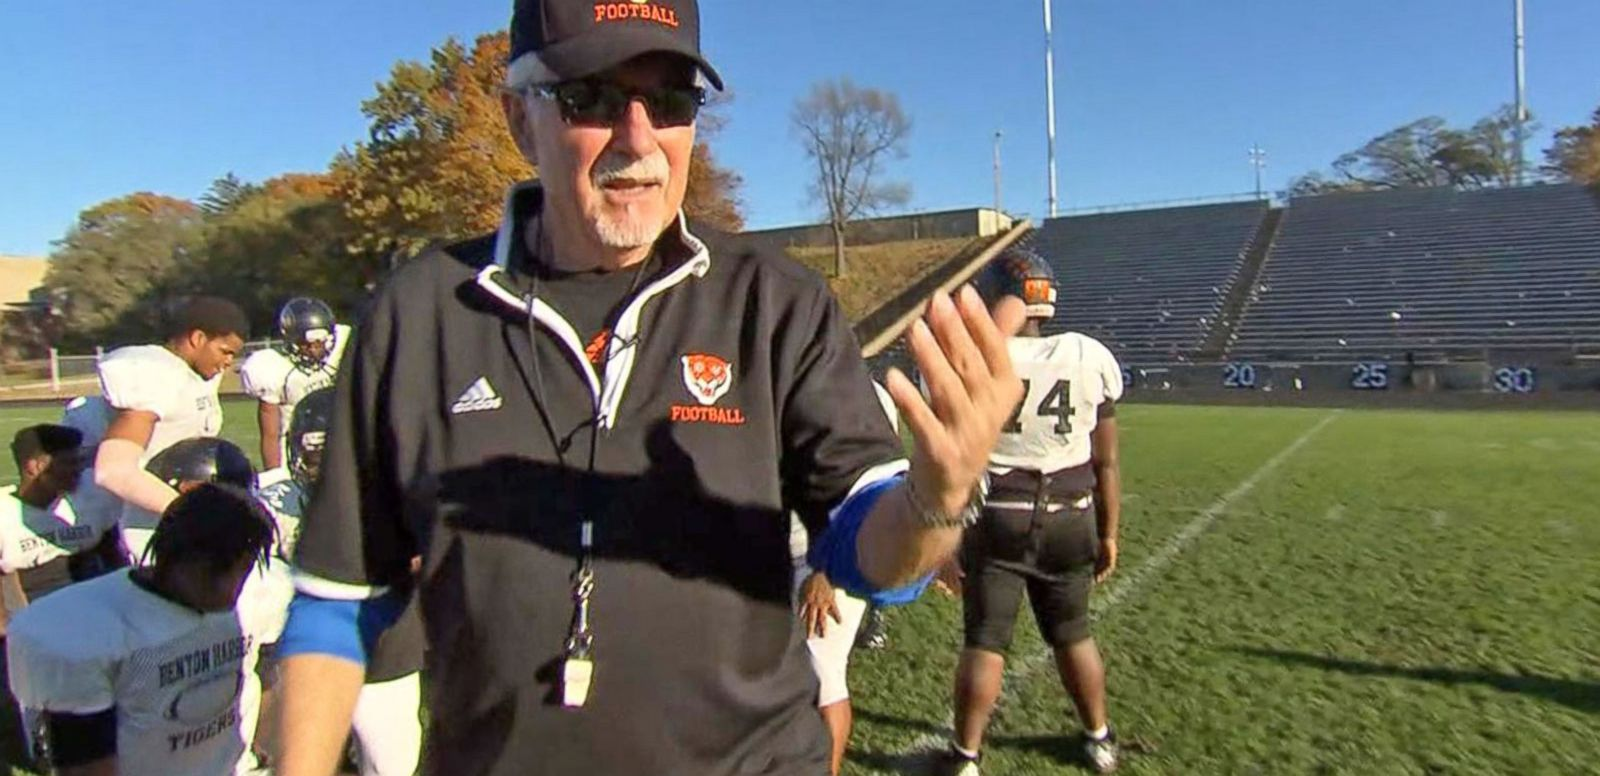 VIDEO: Retired College Football Coach Leads High School Team to Playoff Glory